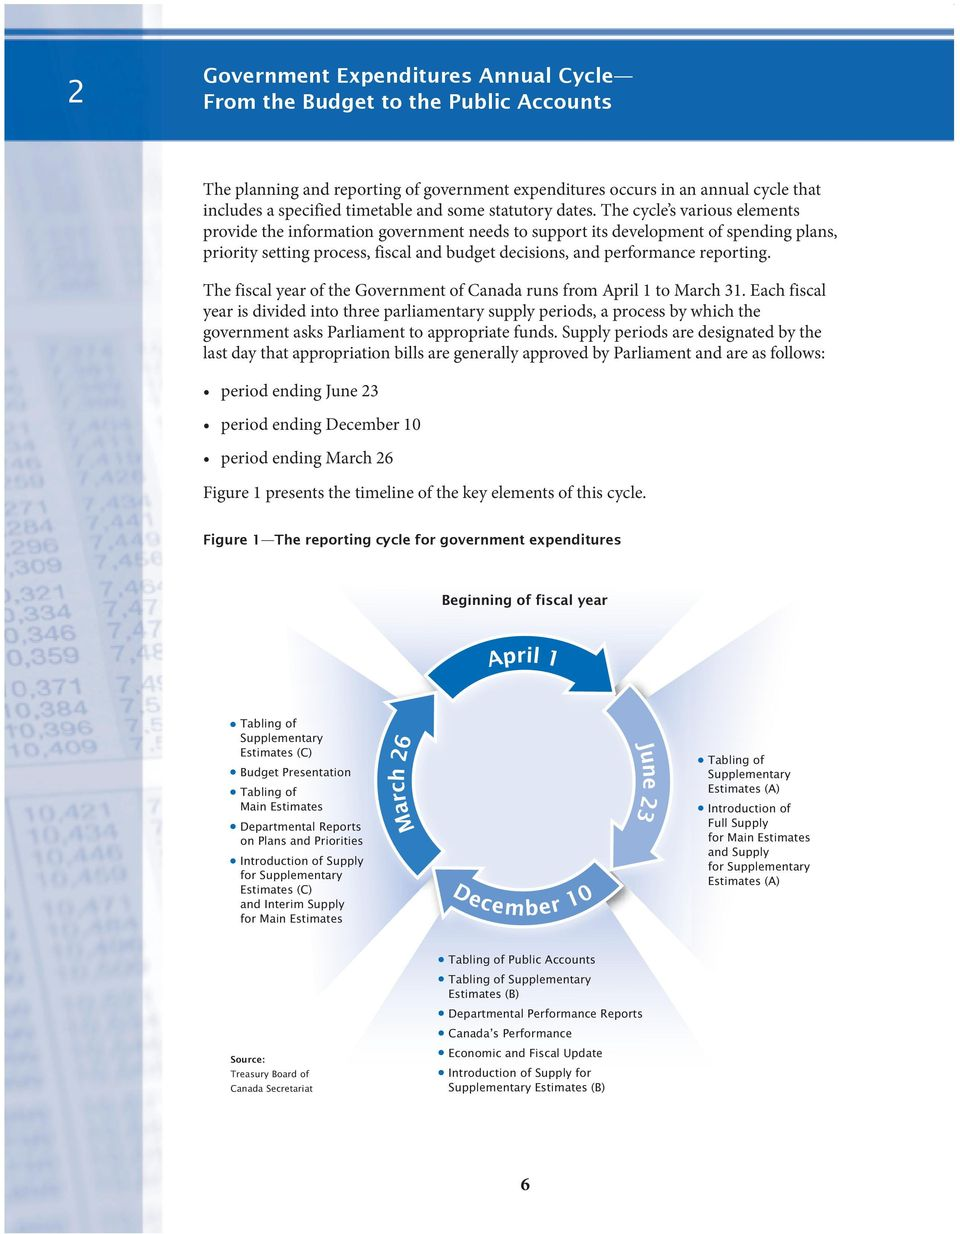 The cycle s various elements provide the information government needs to support its development of spending plans, priority setting process, fiscal and budget decisions, and performance reporting.